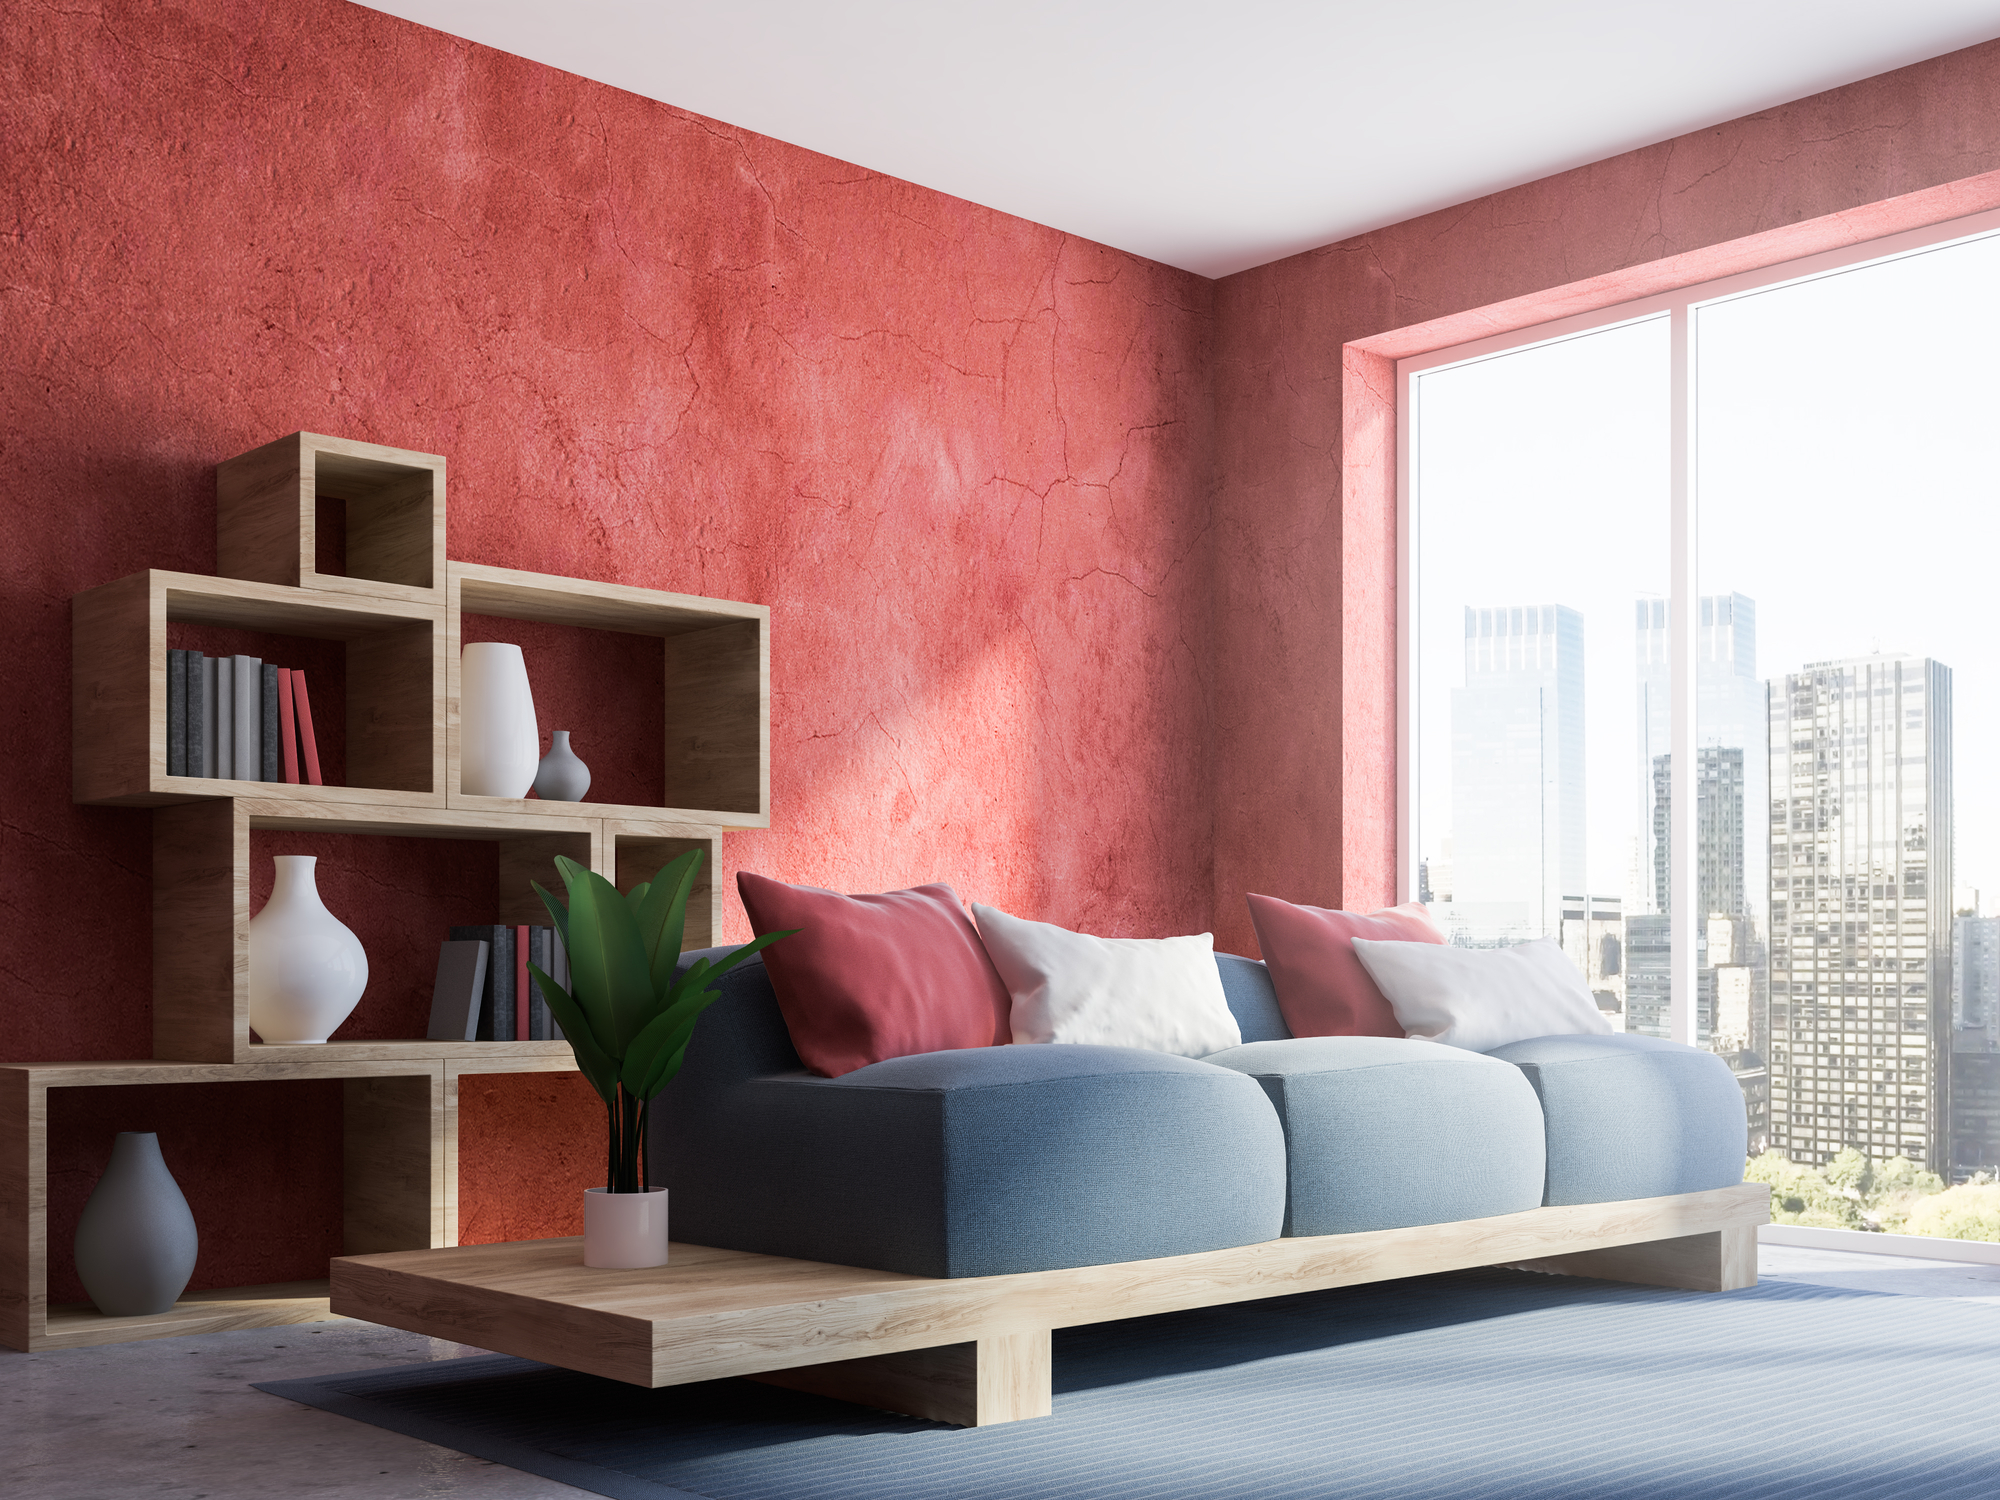 How color impacts your mood interior design